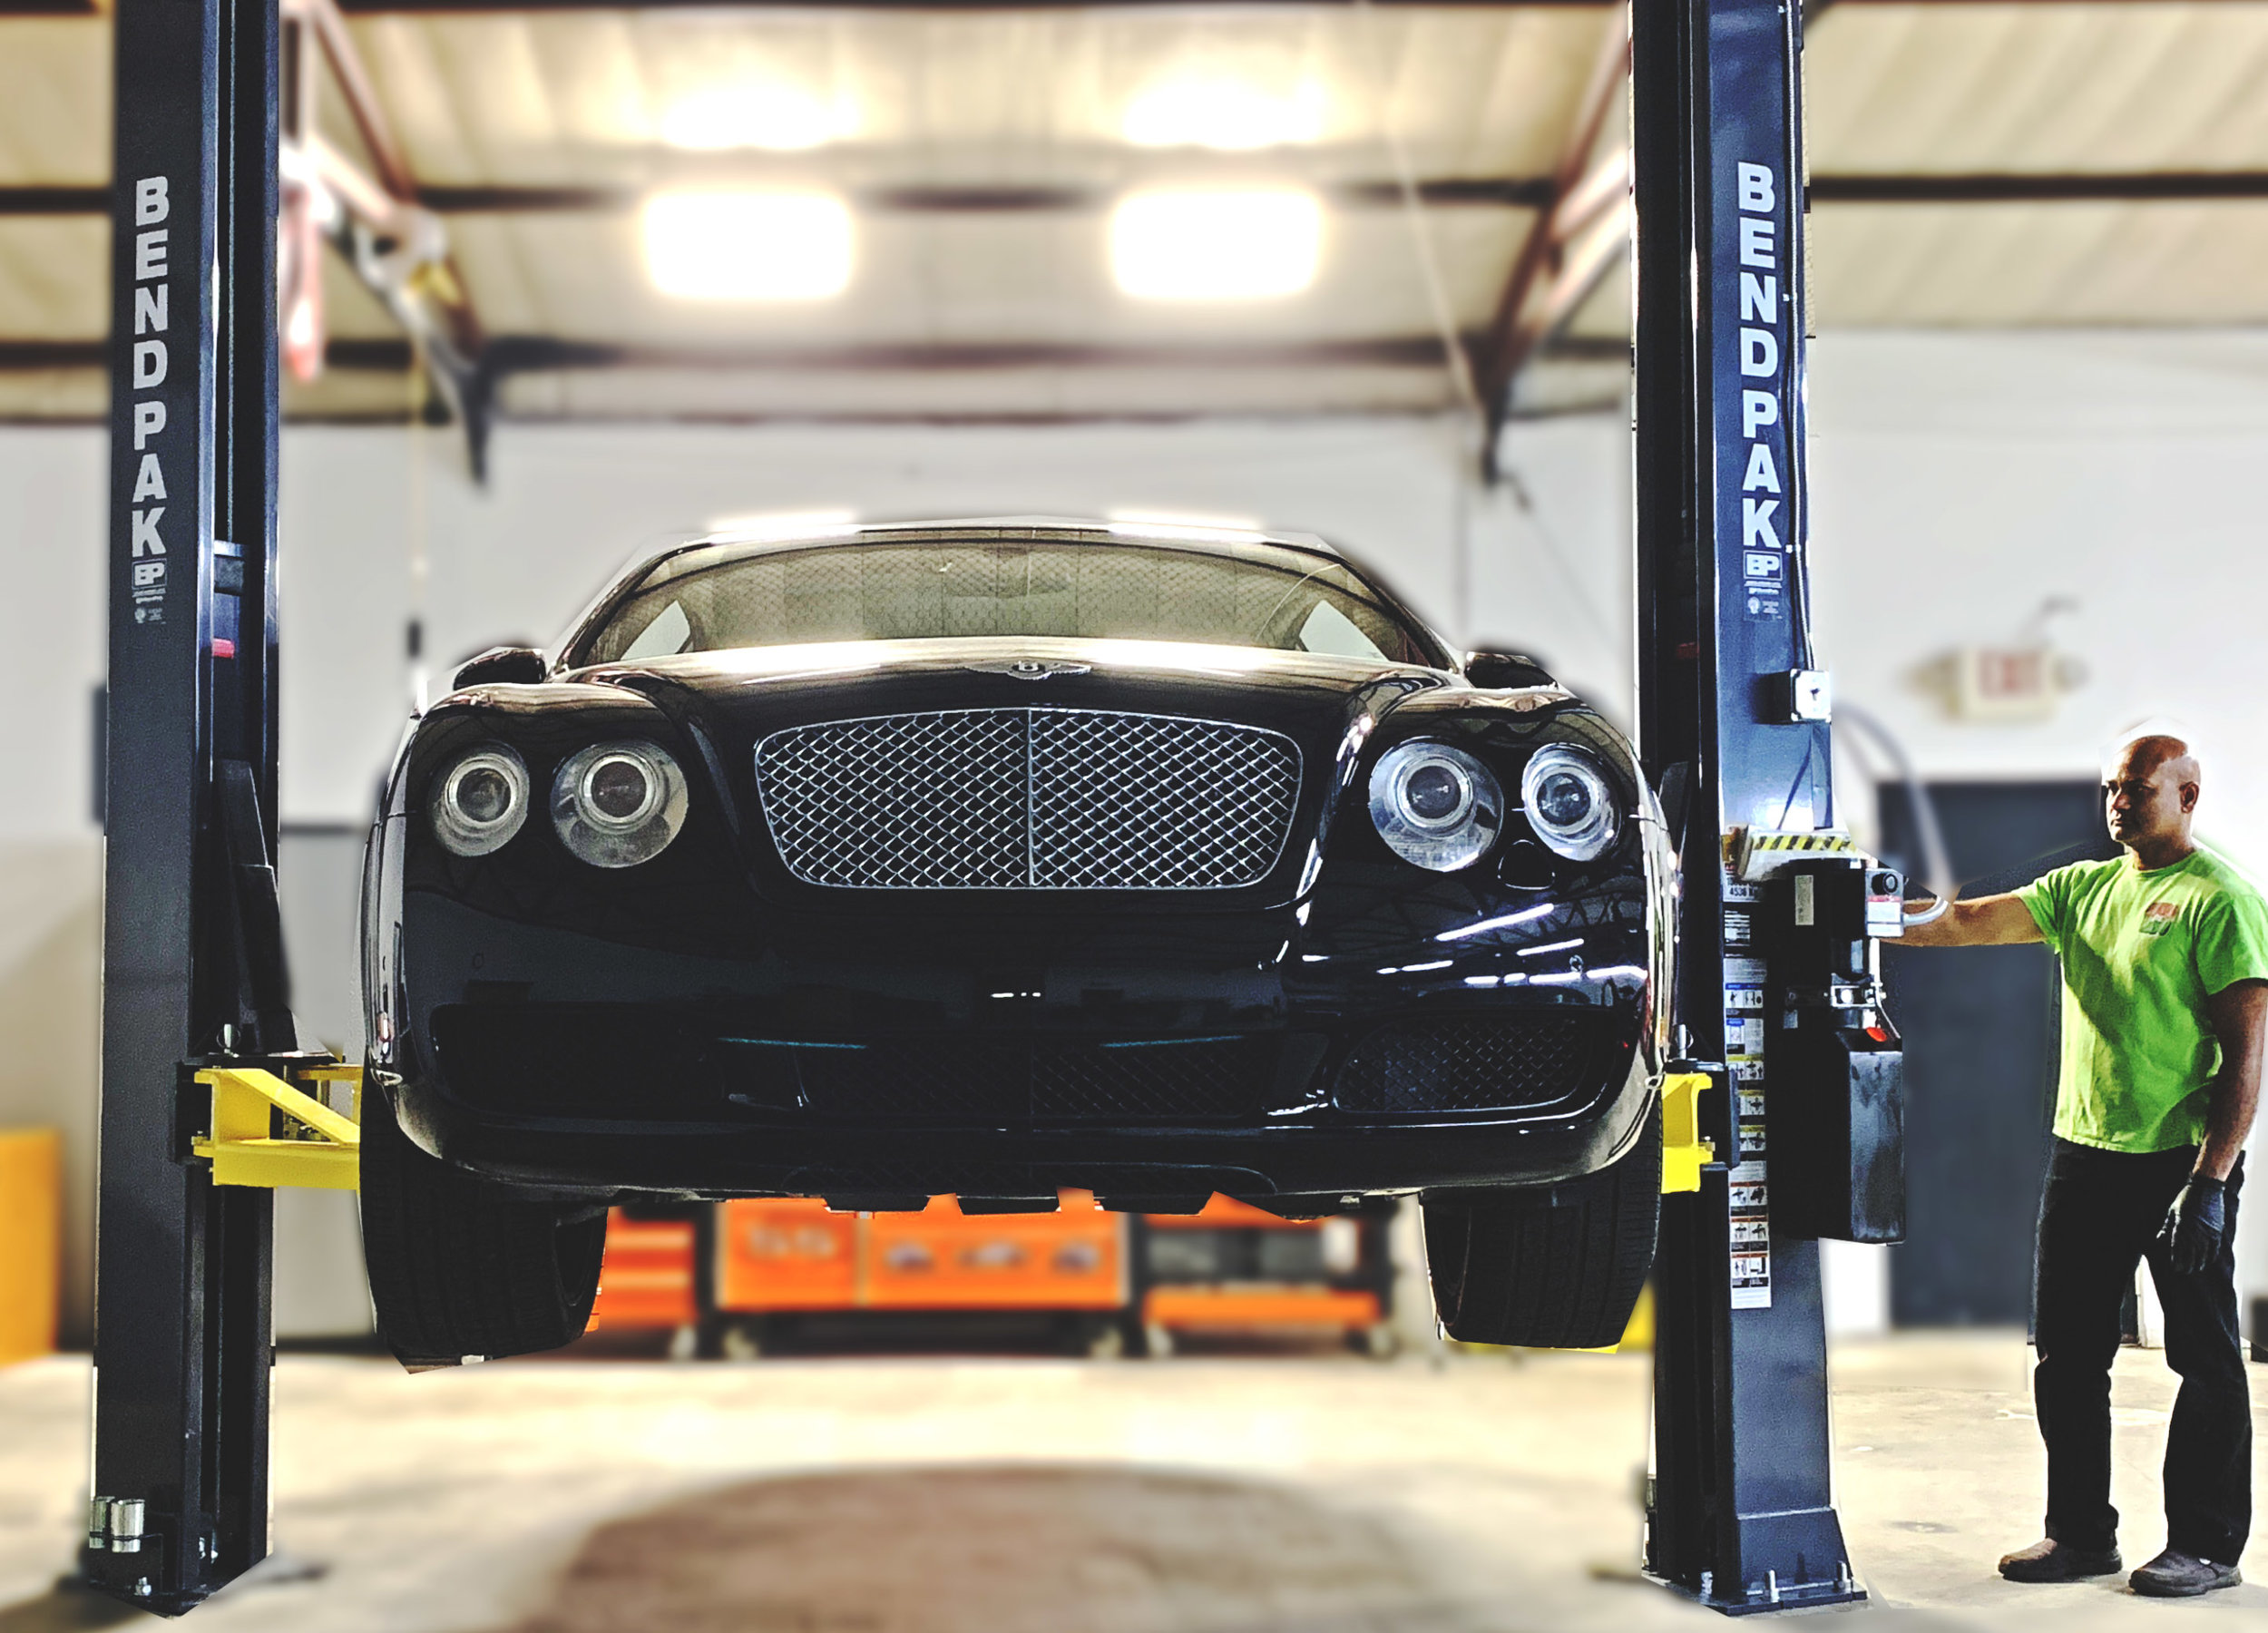 Lift Bentley 1 w David.jpg